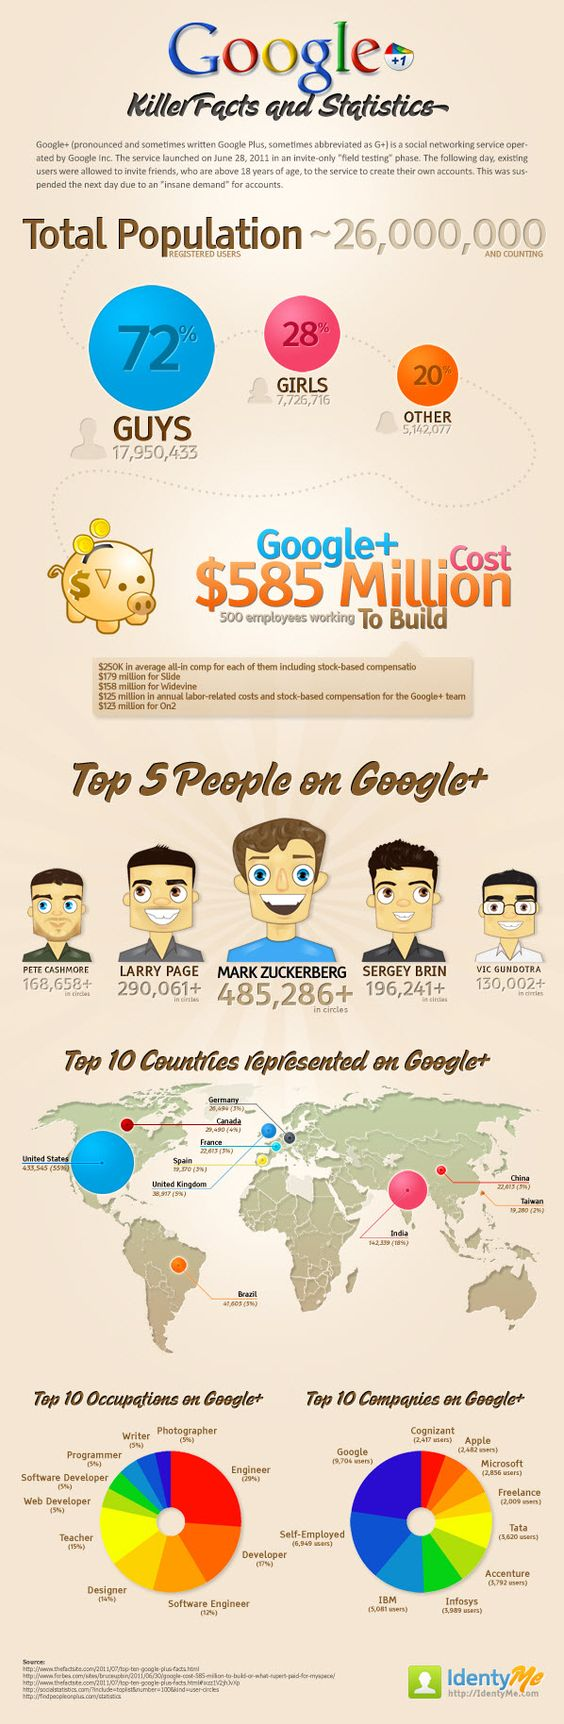 #Google killer facts and statistics. #Infograph